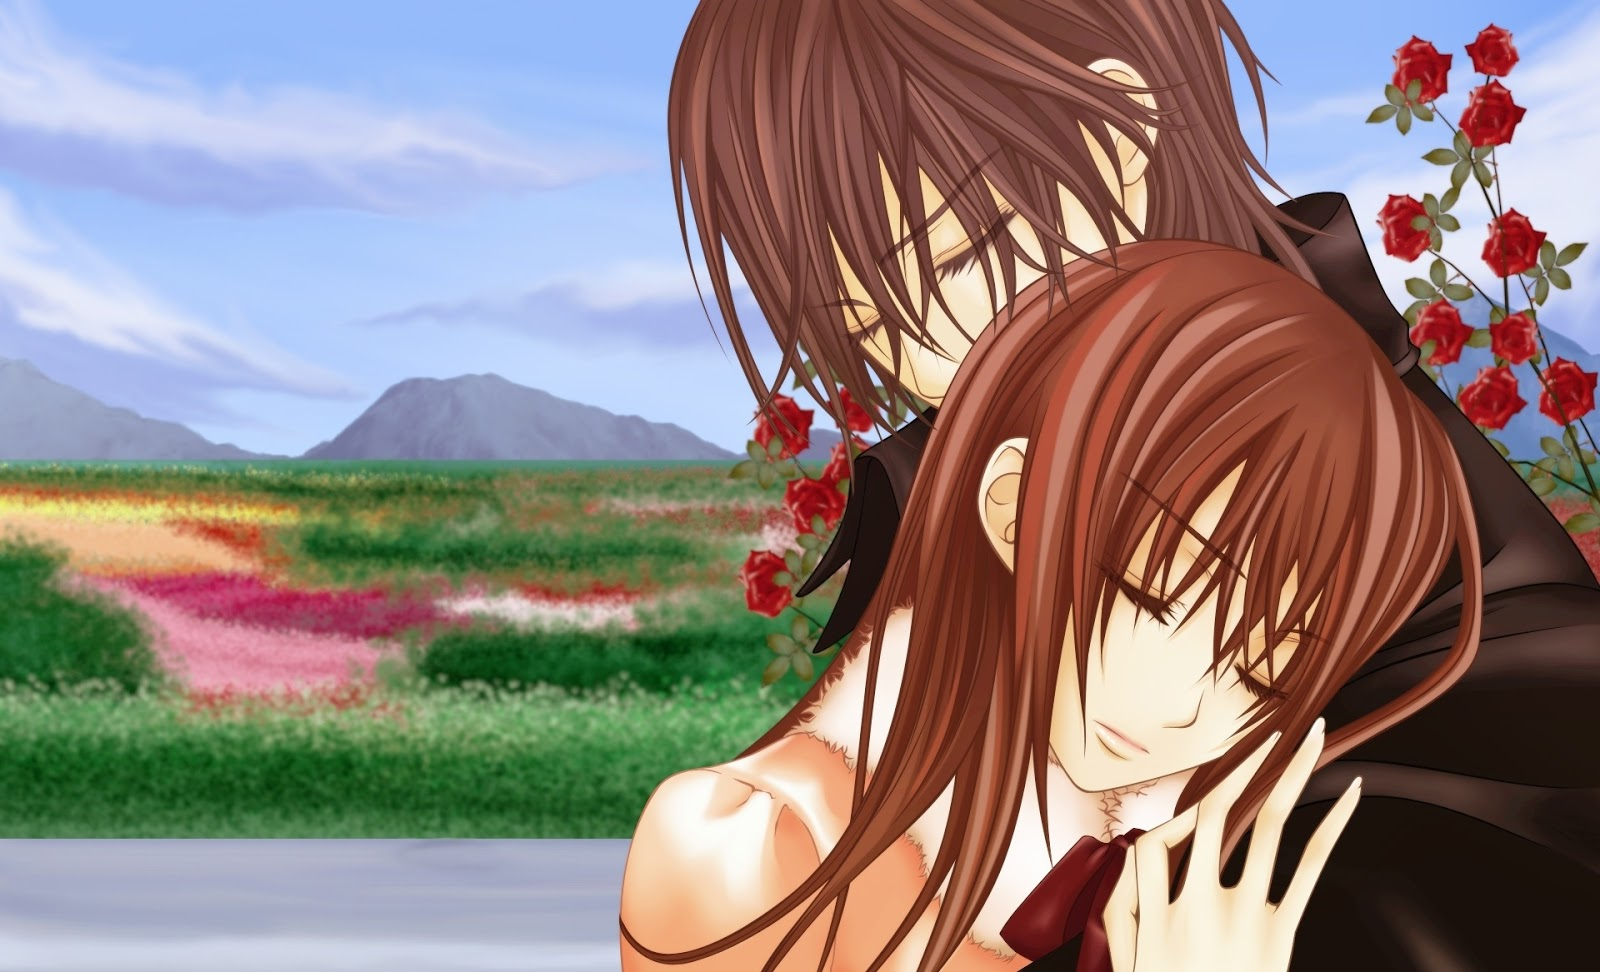 Romantic Love Girl Wallpaper : Mu?ecas manga anime Fondos de pantalla y mucho m?s